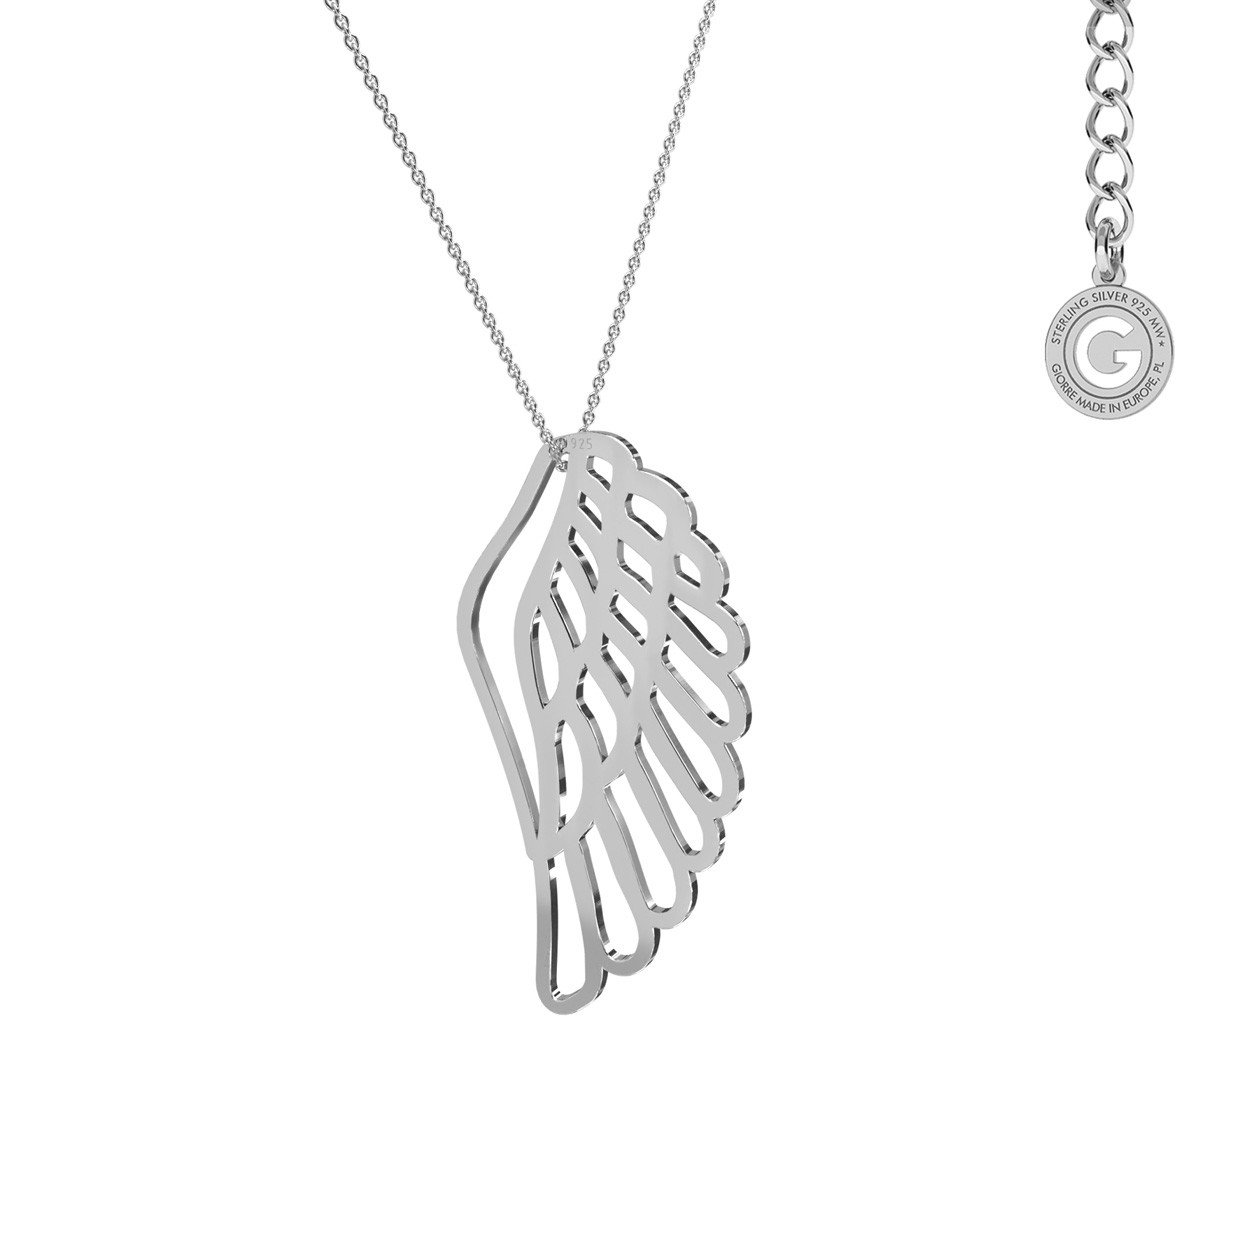 Silver wing necklace, sterling silver 925